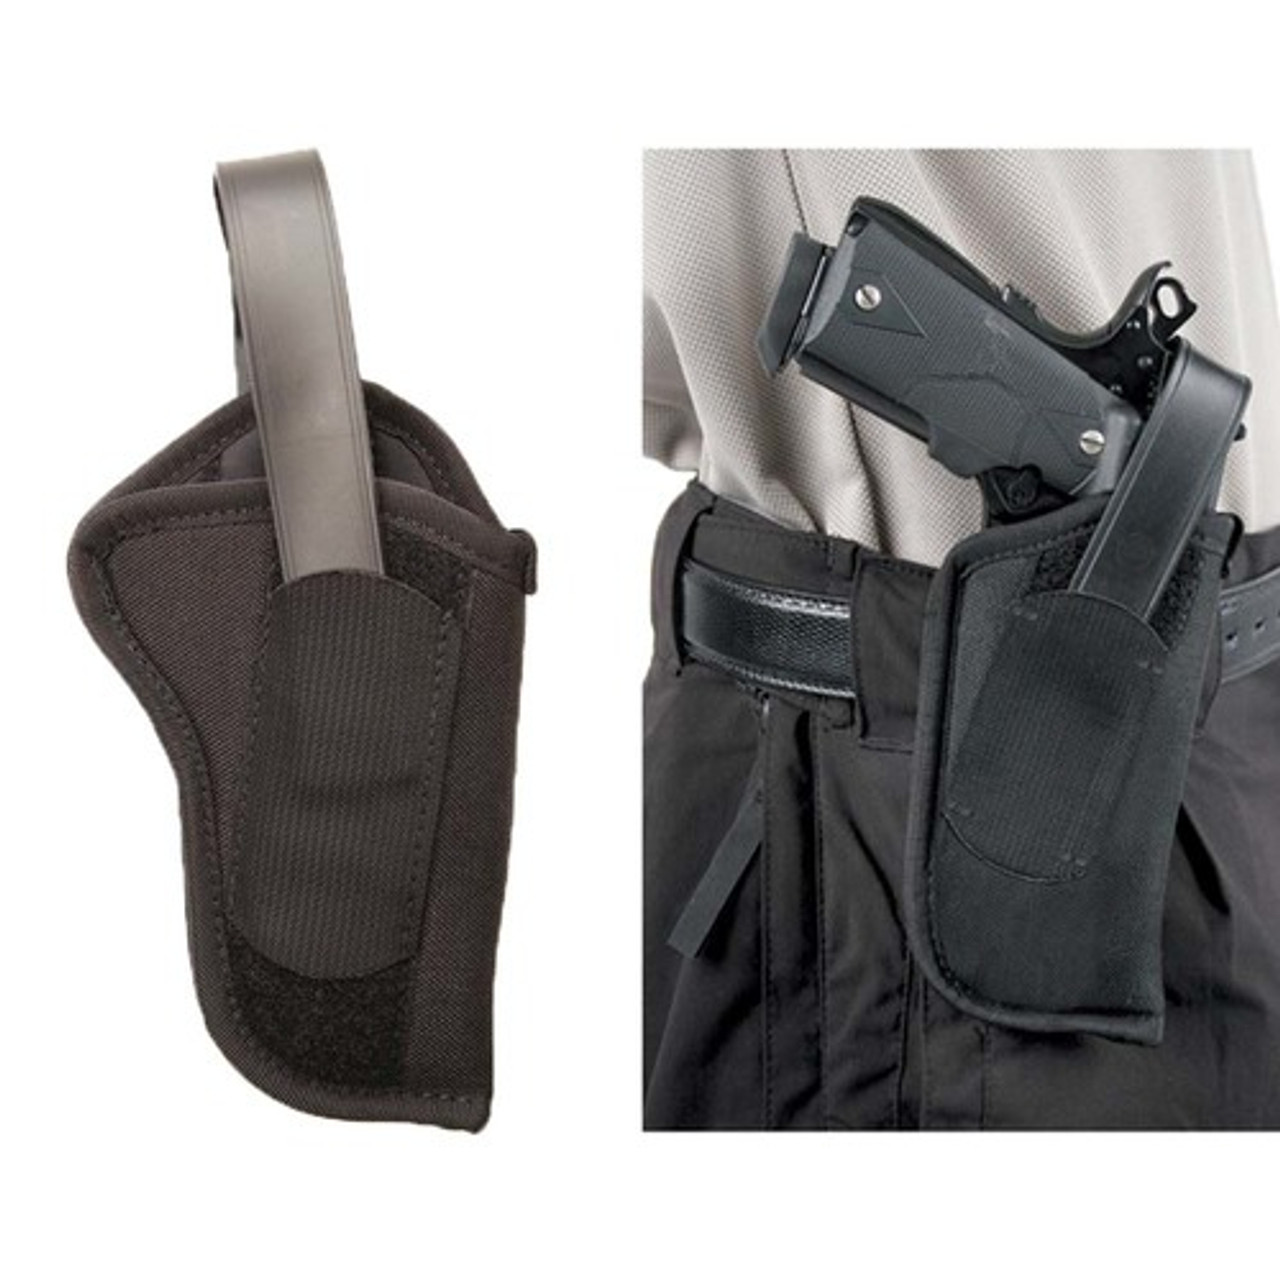 BLACKHAWK 40HT NYLON HIP HOLSTER WITH THUMB BREAK, Constructed of 1000  denier CORDURA® nylon outer material, Laminate construction for waterproof